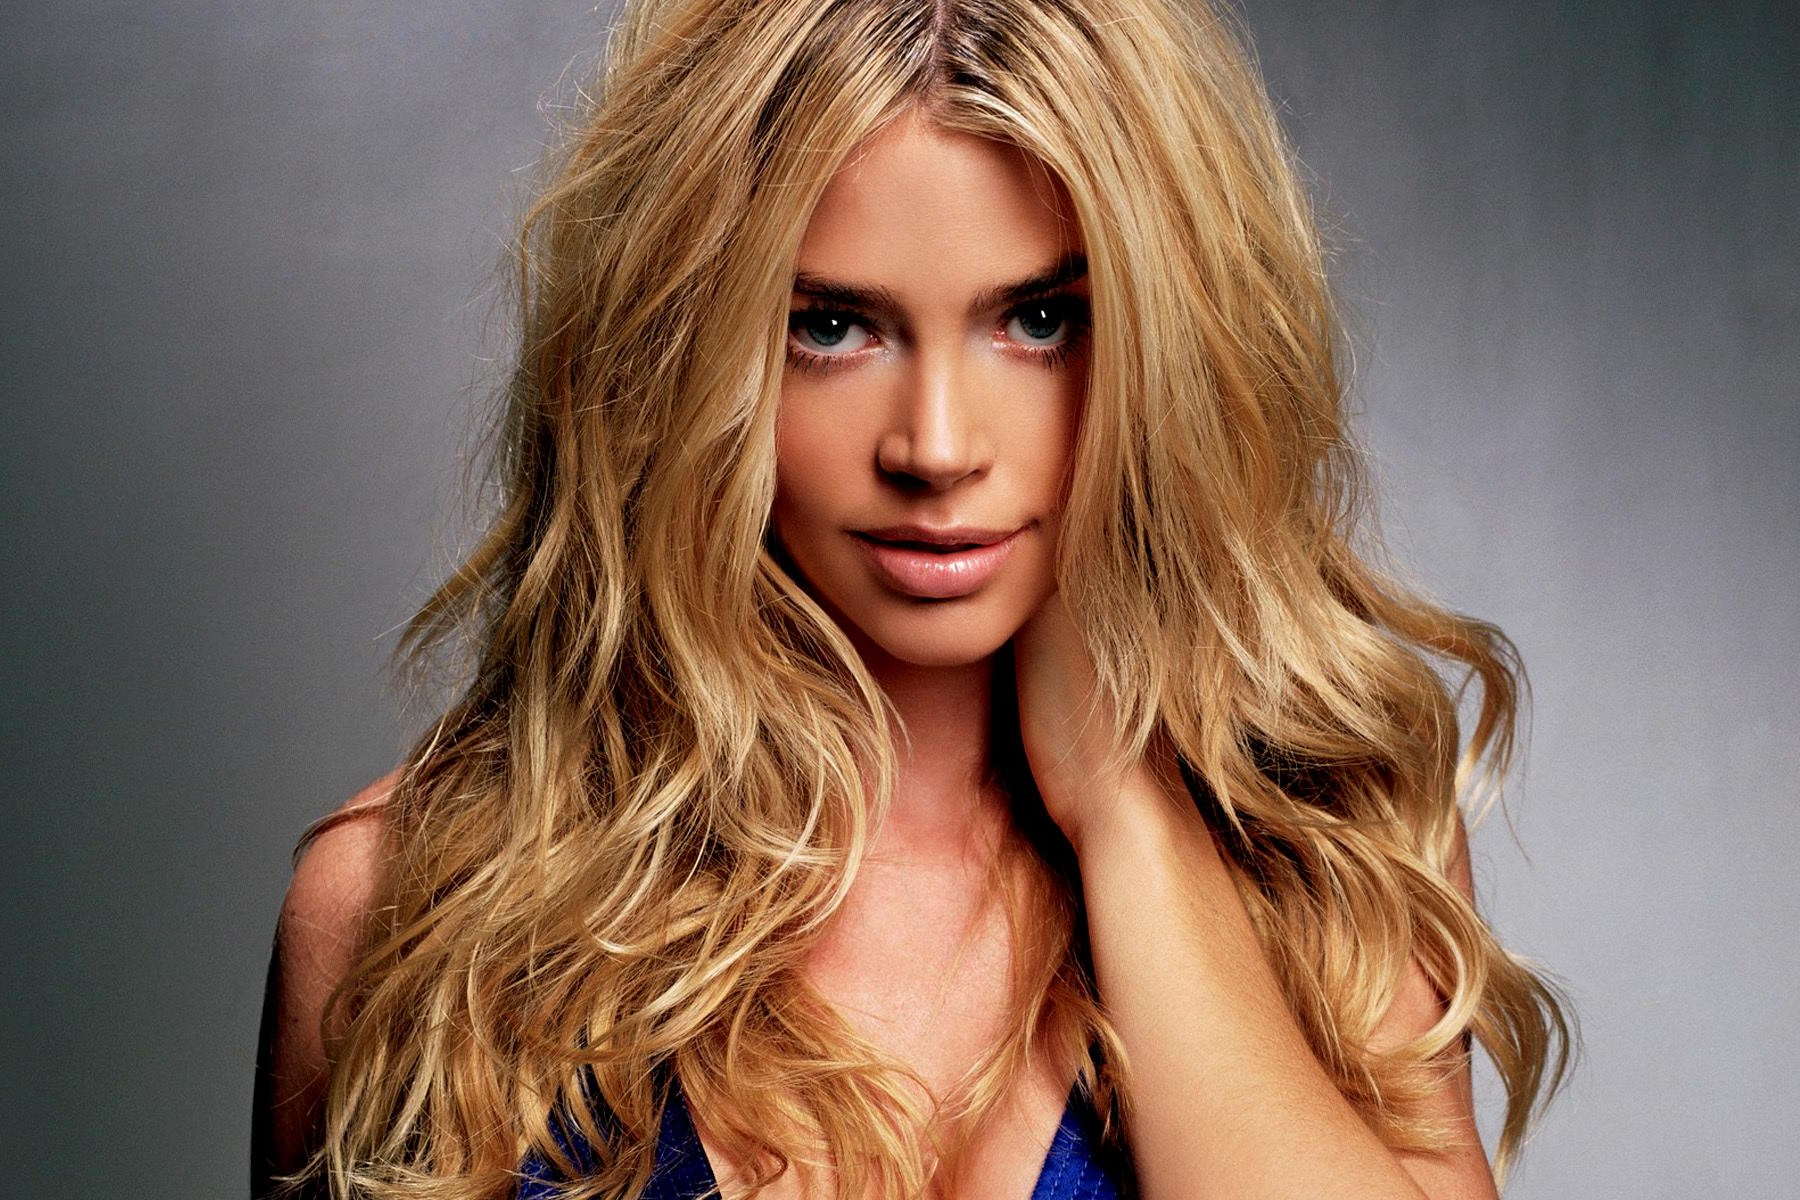 ca. 2003 --- Actress Denise Richards --- Image by © James White/CORBIS OUTLINE